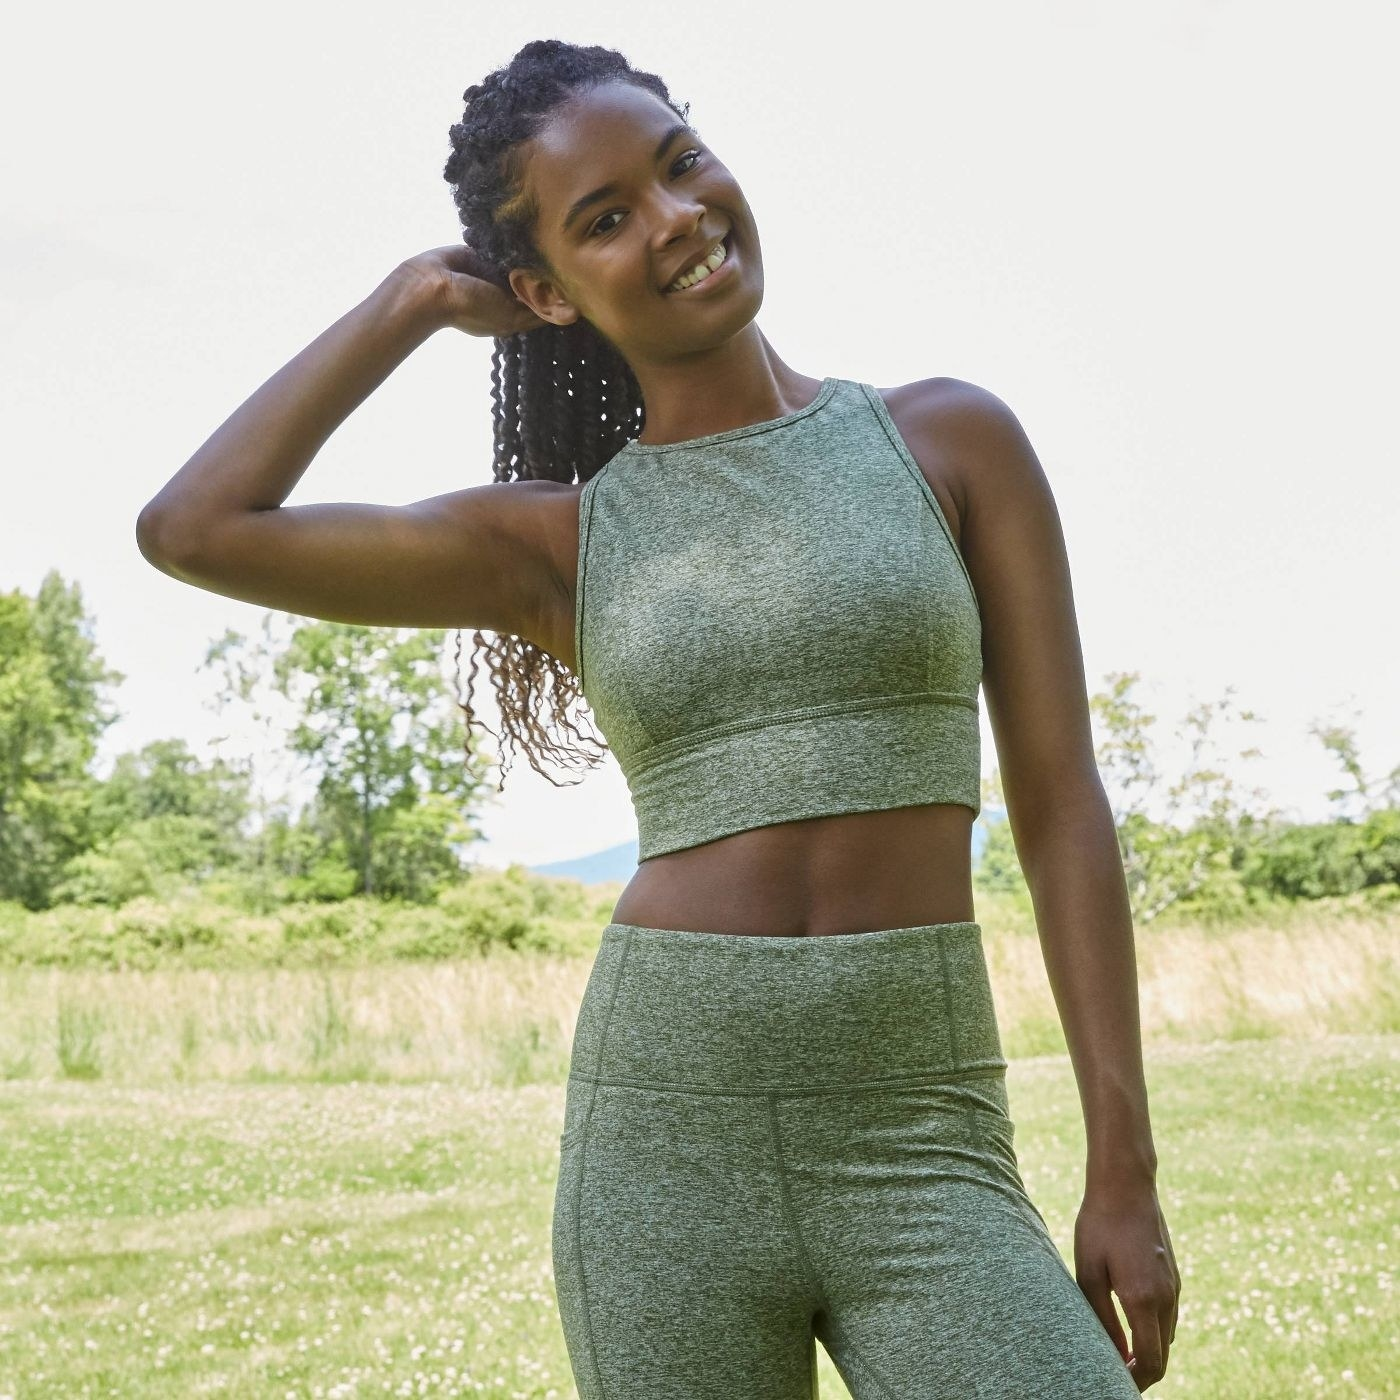 Model wearing the bra in heathered green with the matching leggings